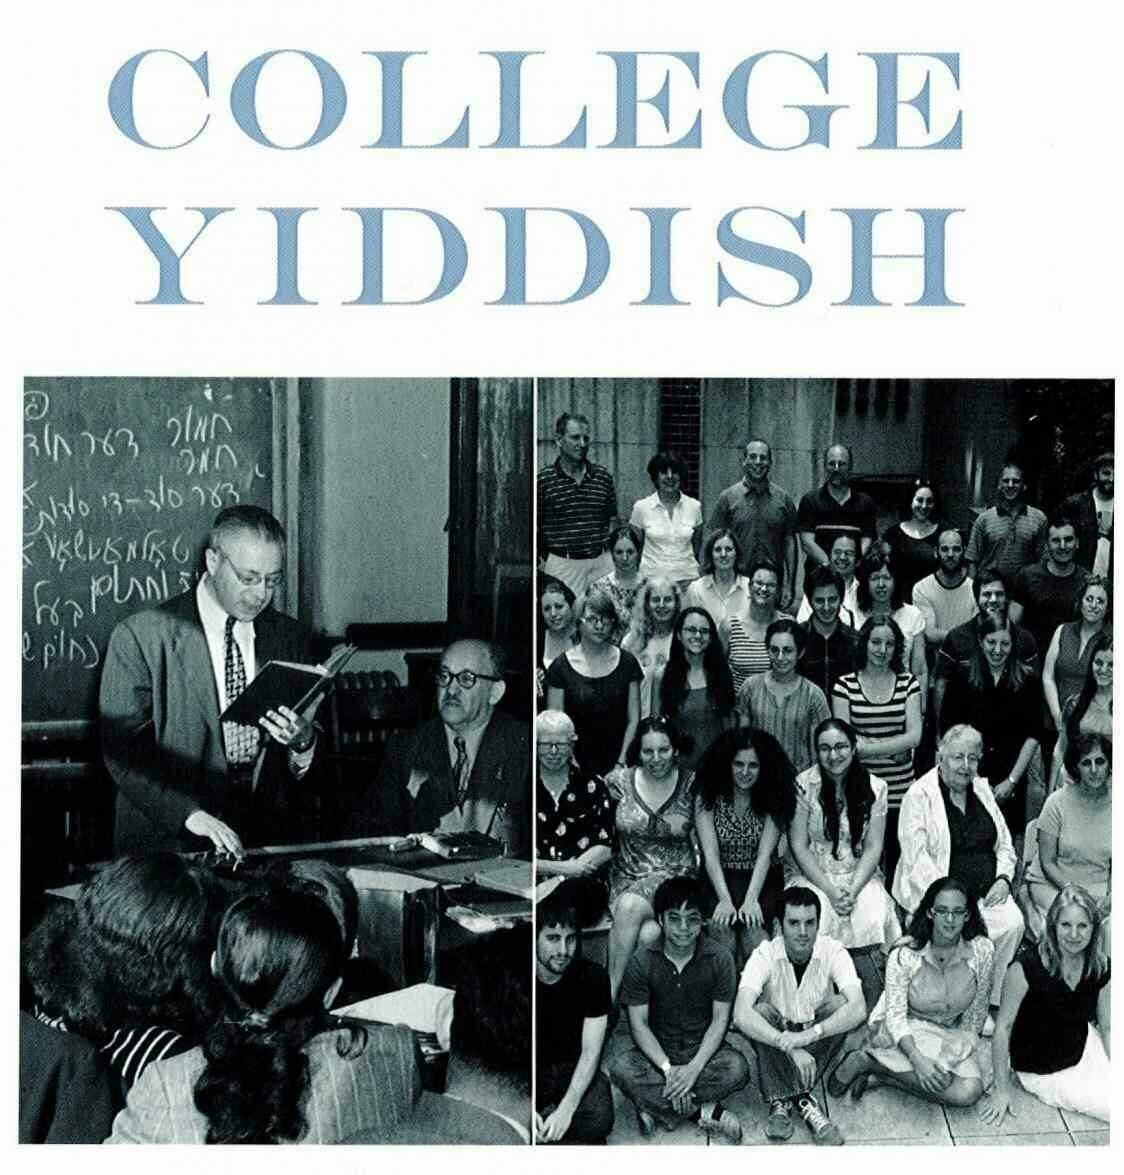 "<p>The cov­er of Uriel Wein­re­ich's text­book <em>Col­lege Yid­dish</em>, <span class=""numbers"">2011</span> (<span class=""numbers"">1946</span>).</p>"